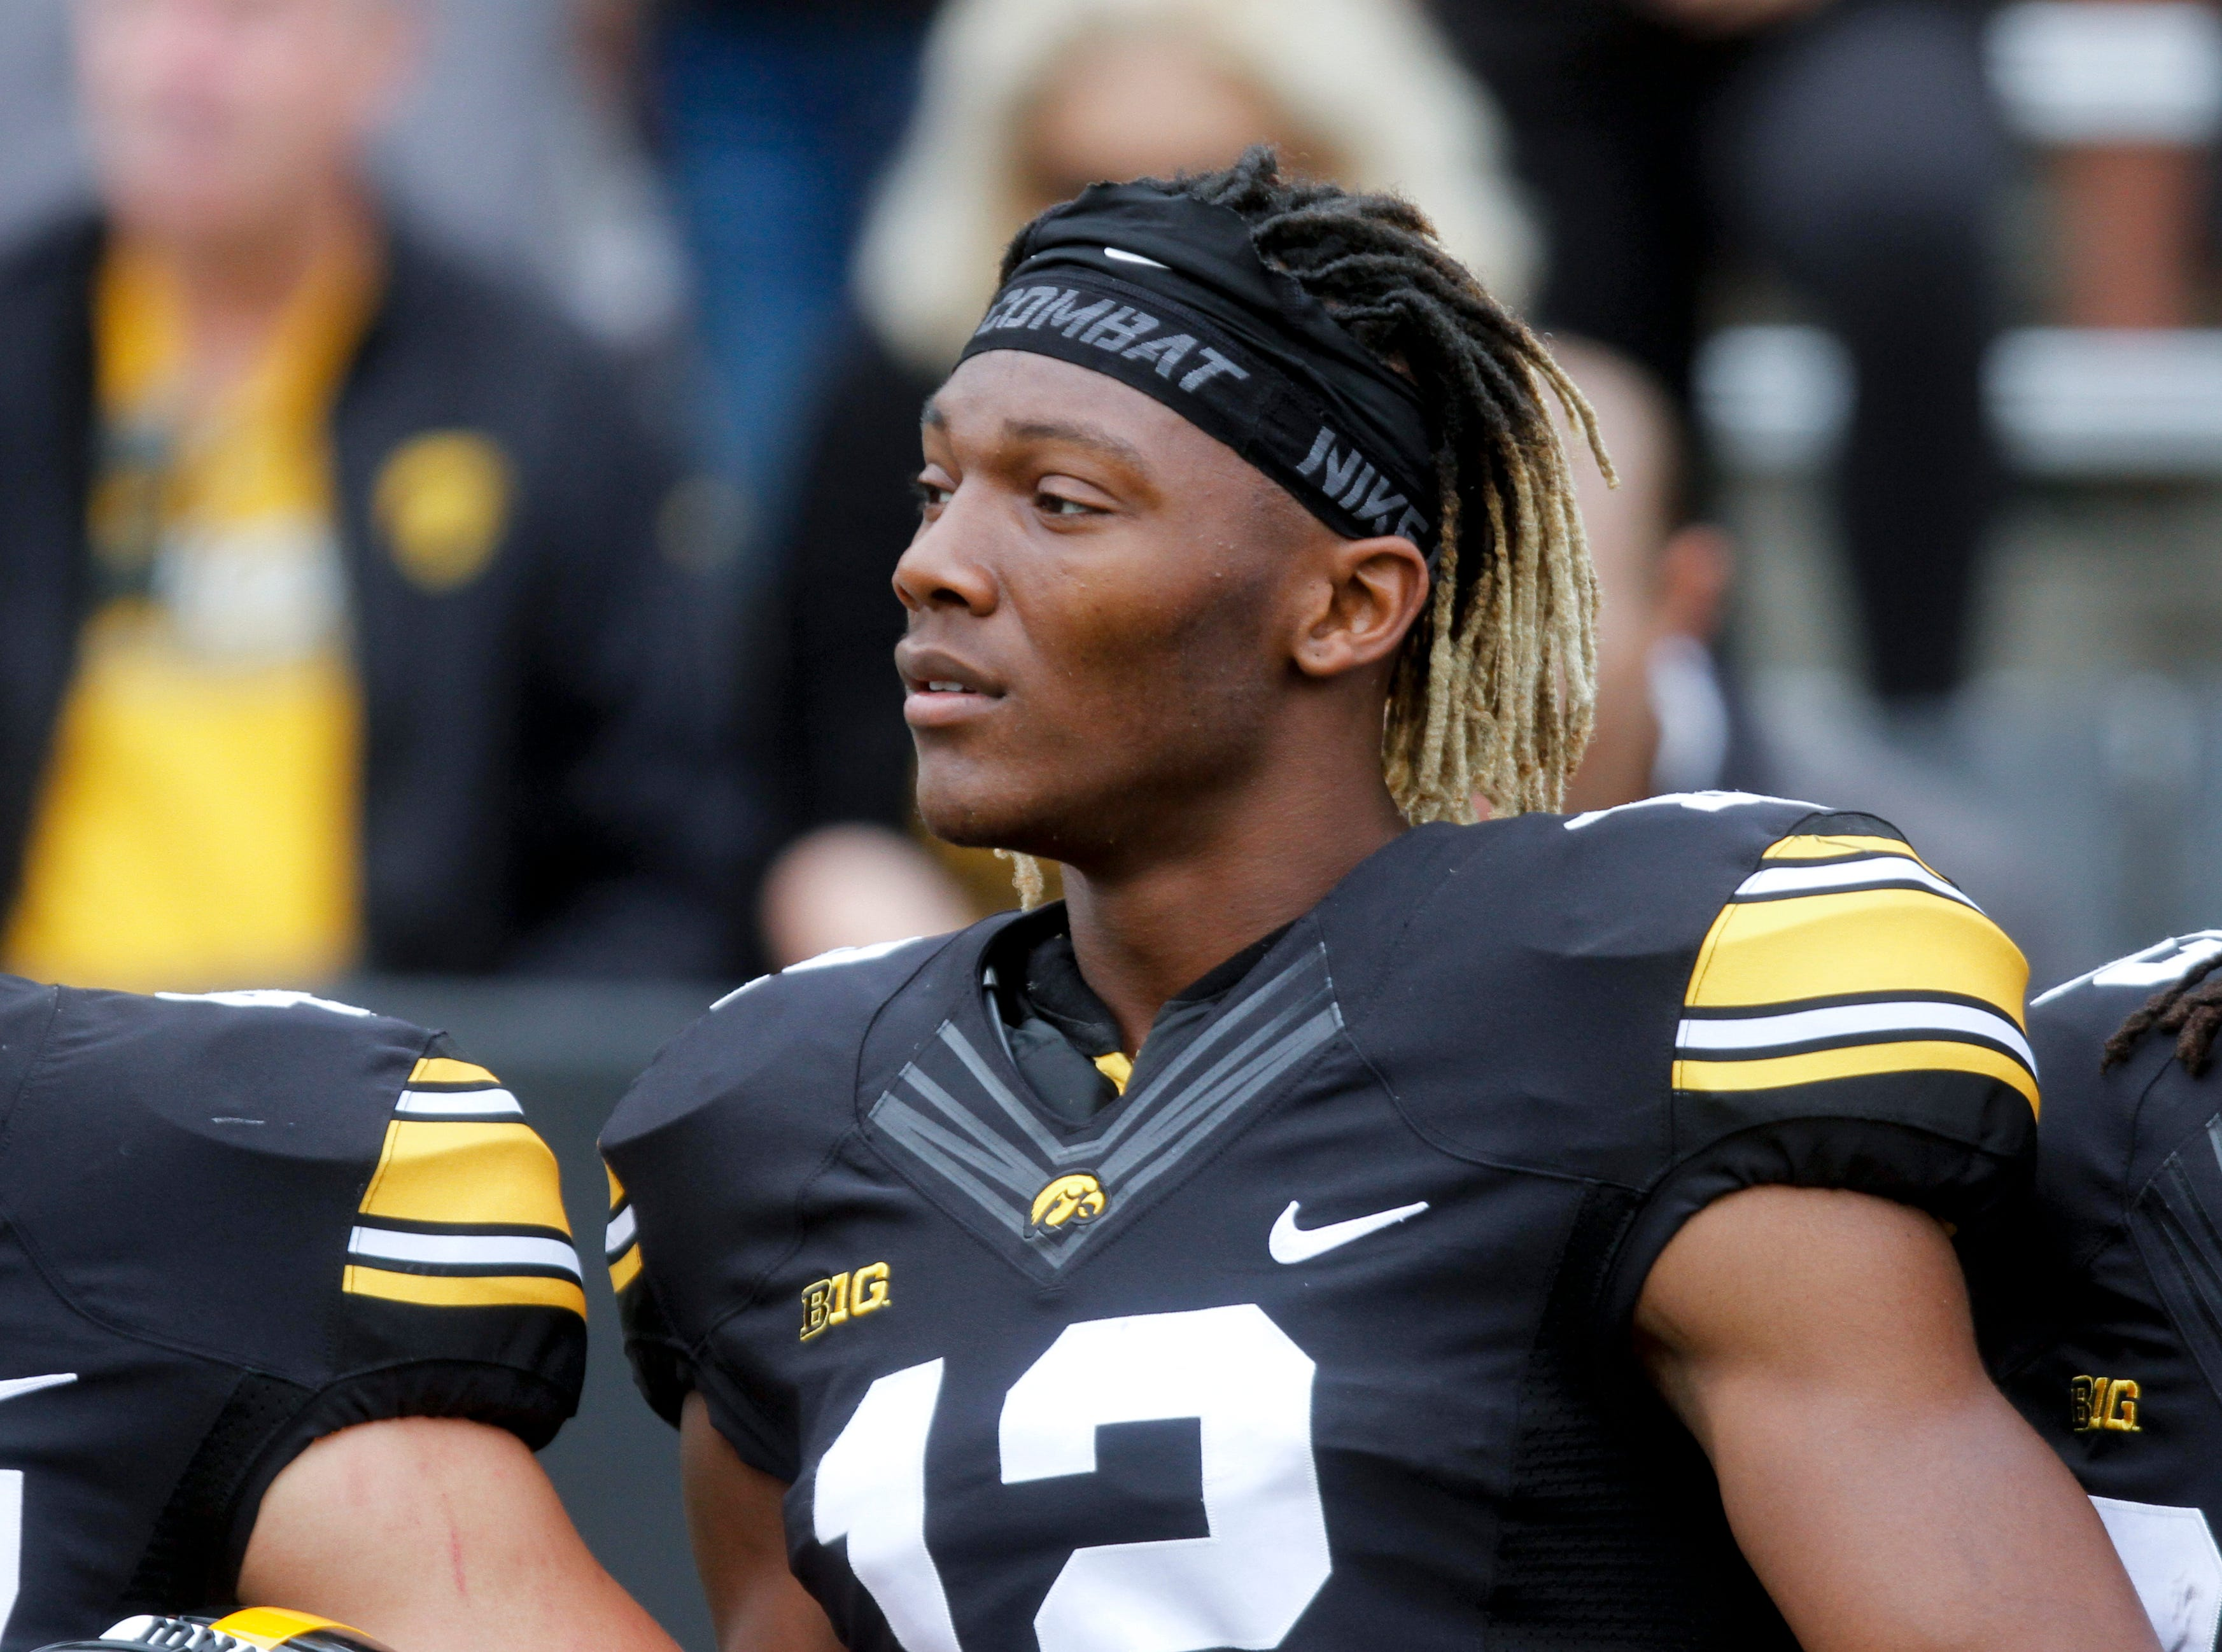 Iowa wide receiver Brandon Smith is more comfortable as a sophomore, which has resulted in a bevy of big catches.